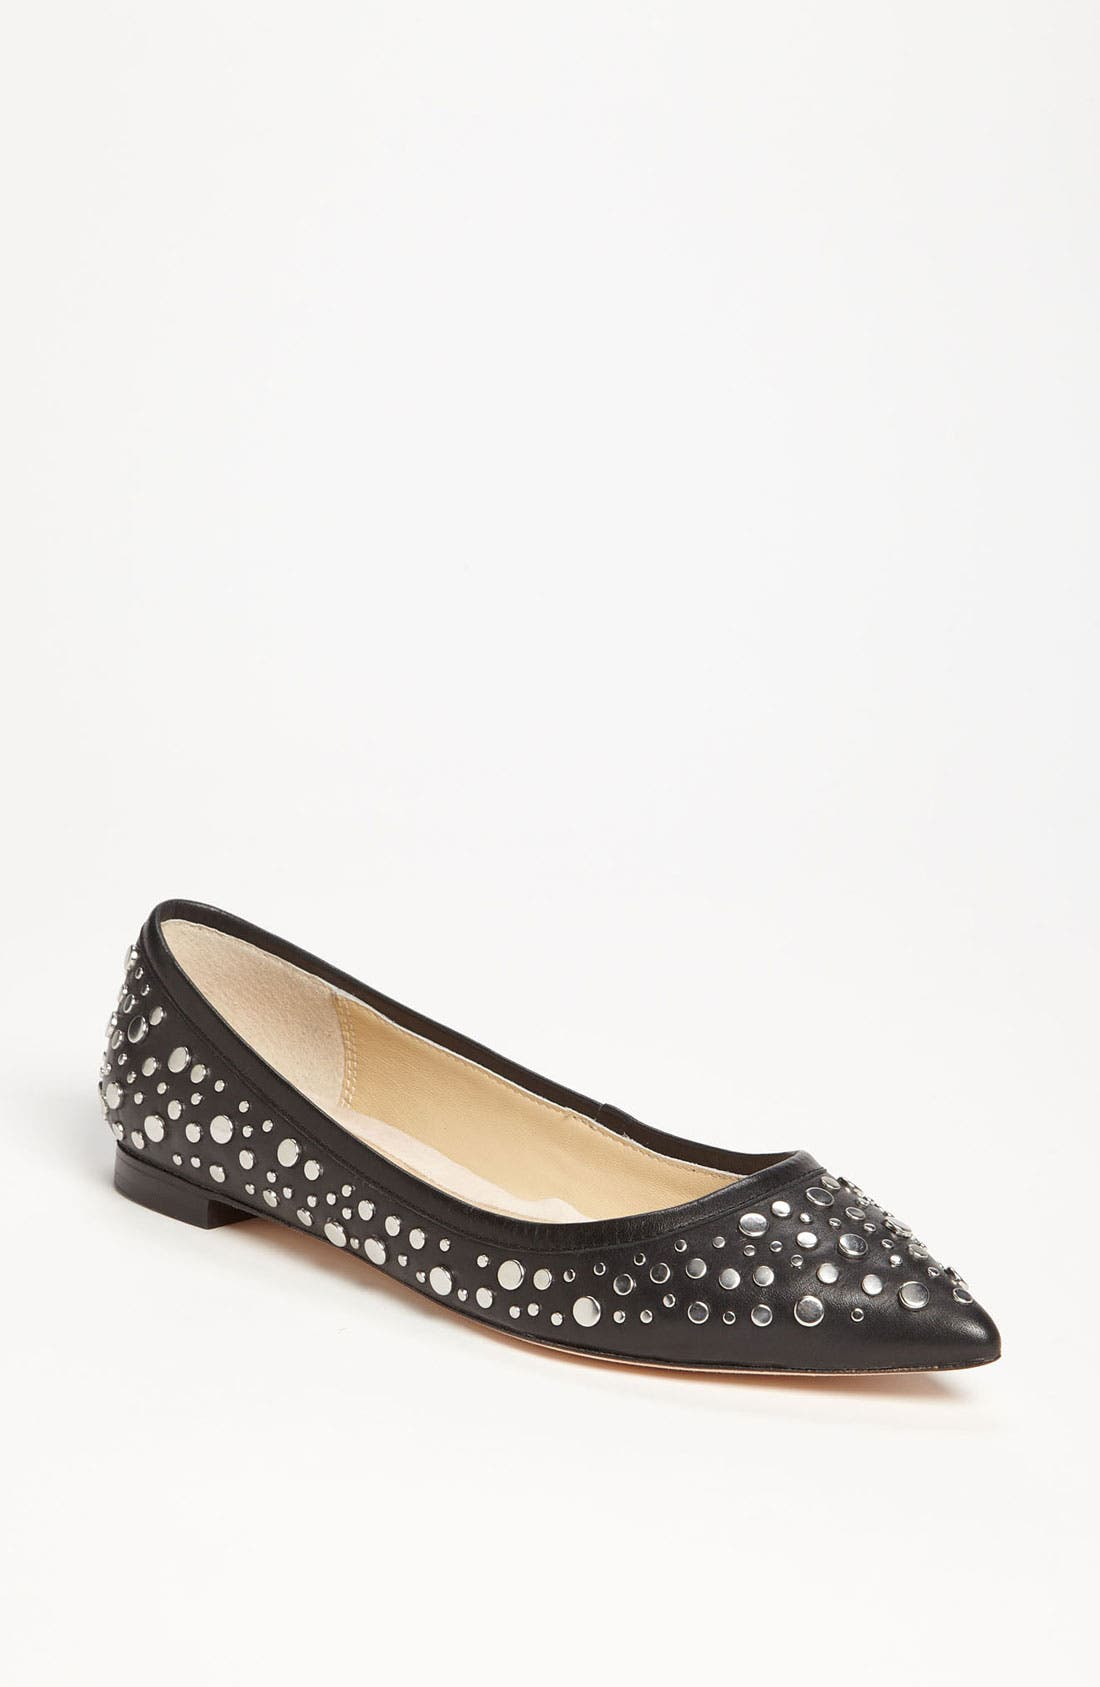 Alternate Image 1 Selected - Diane von Furstenberg 'Ara' Flat